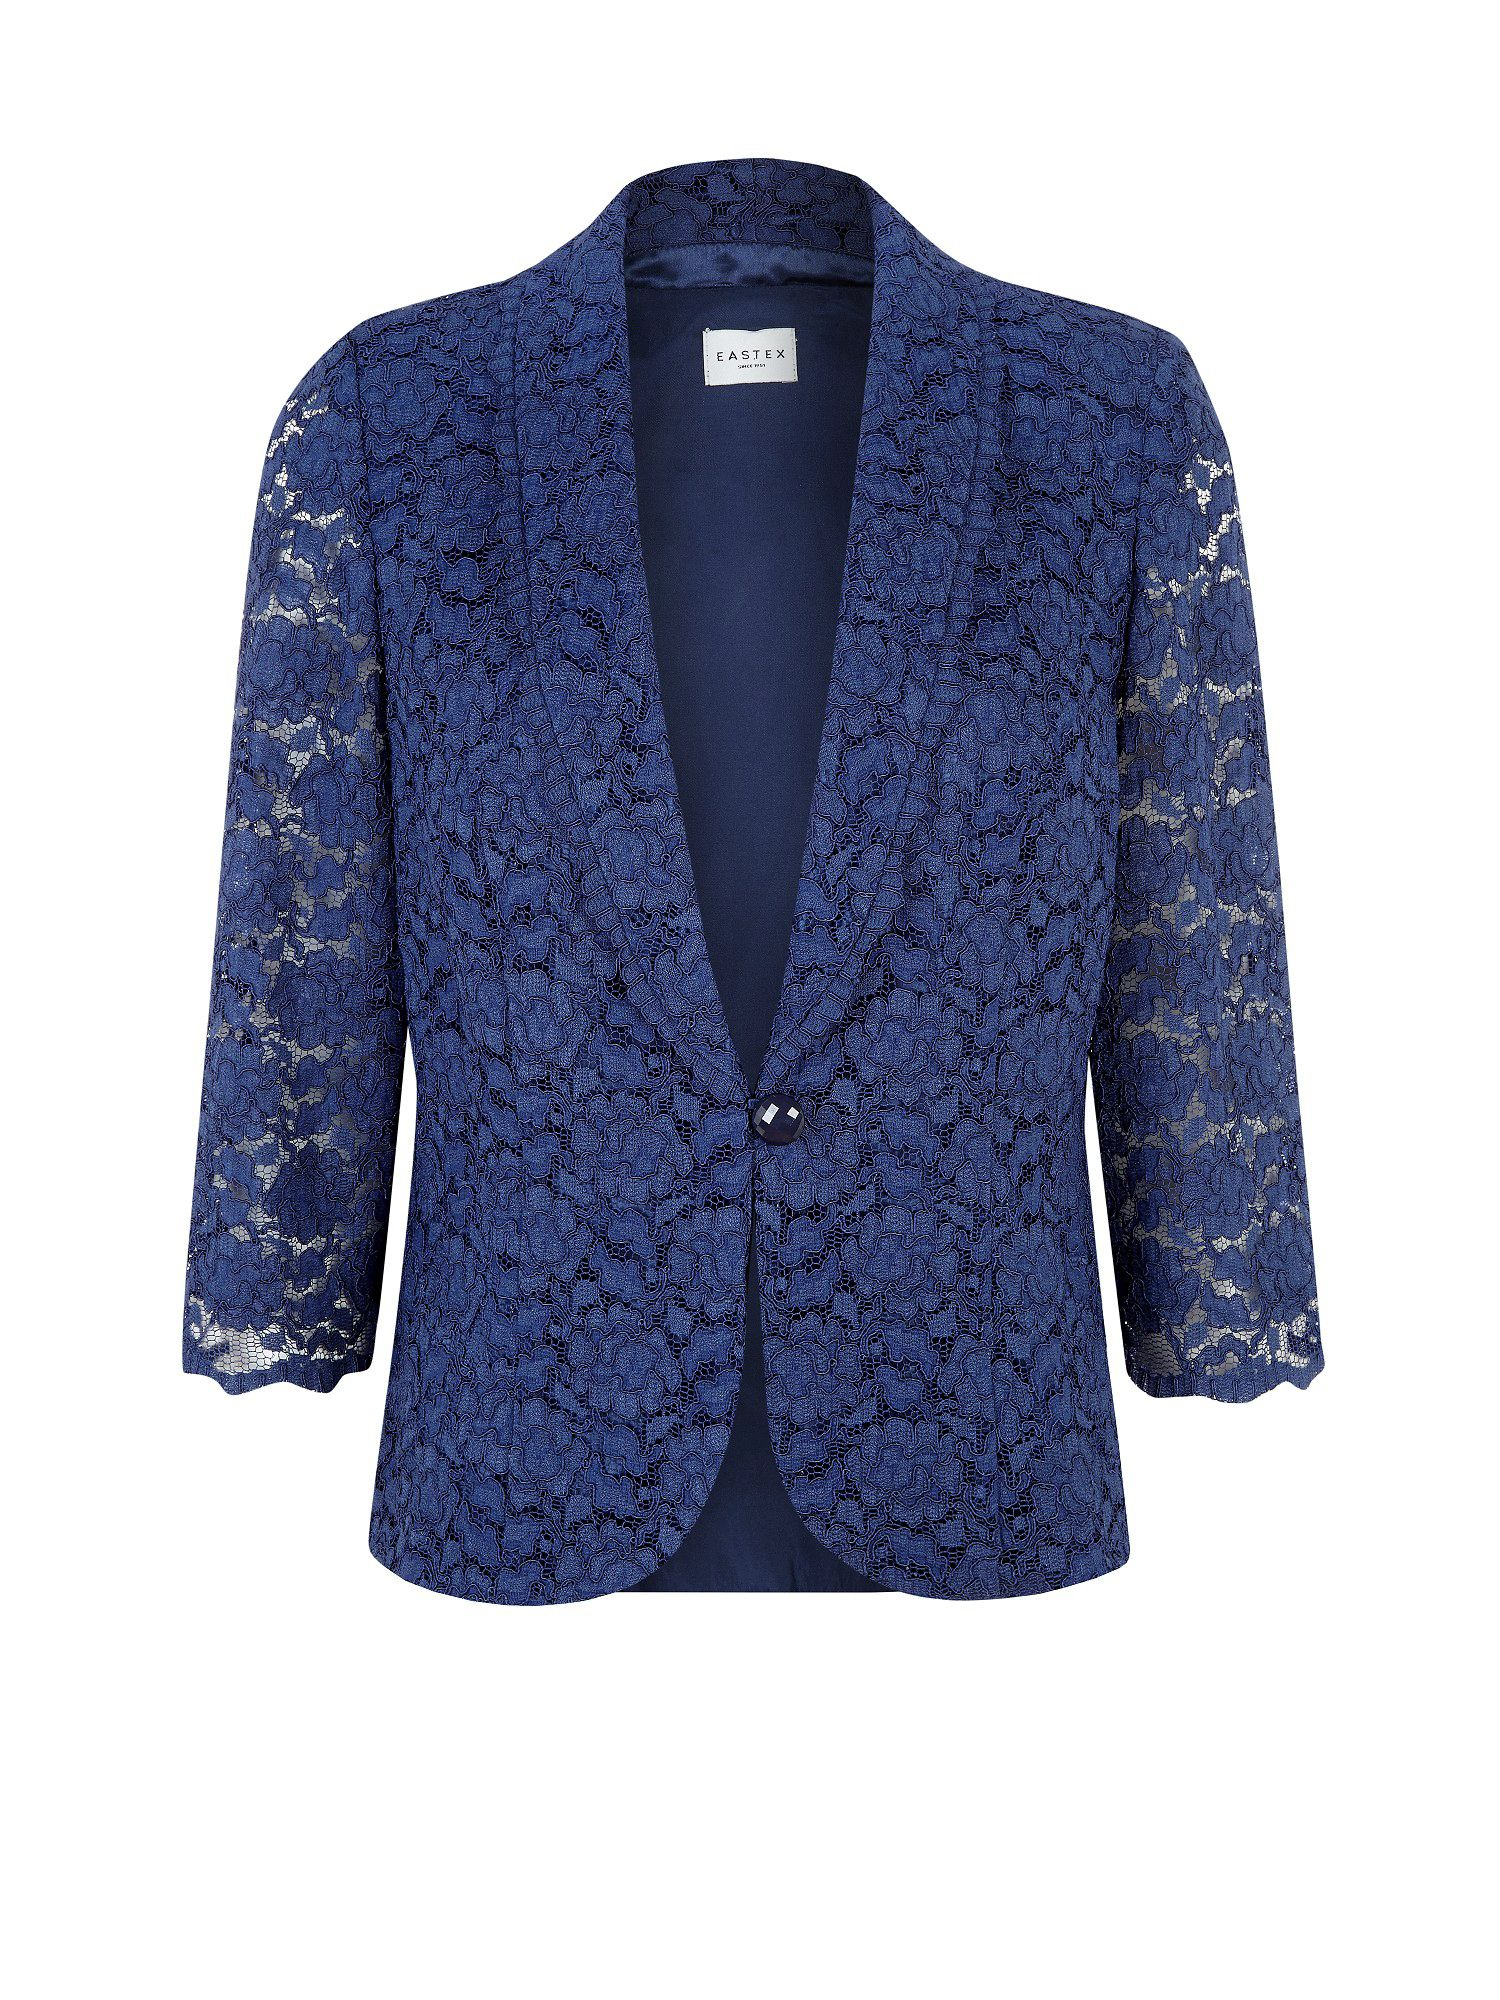 Navy lace tailored jacket